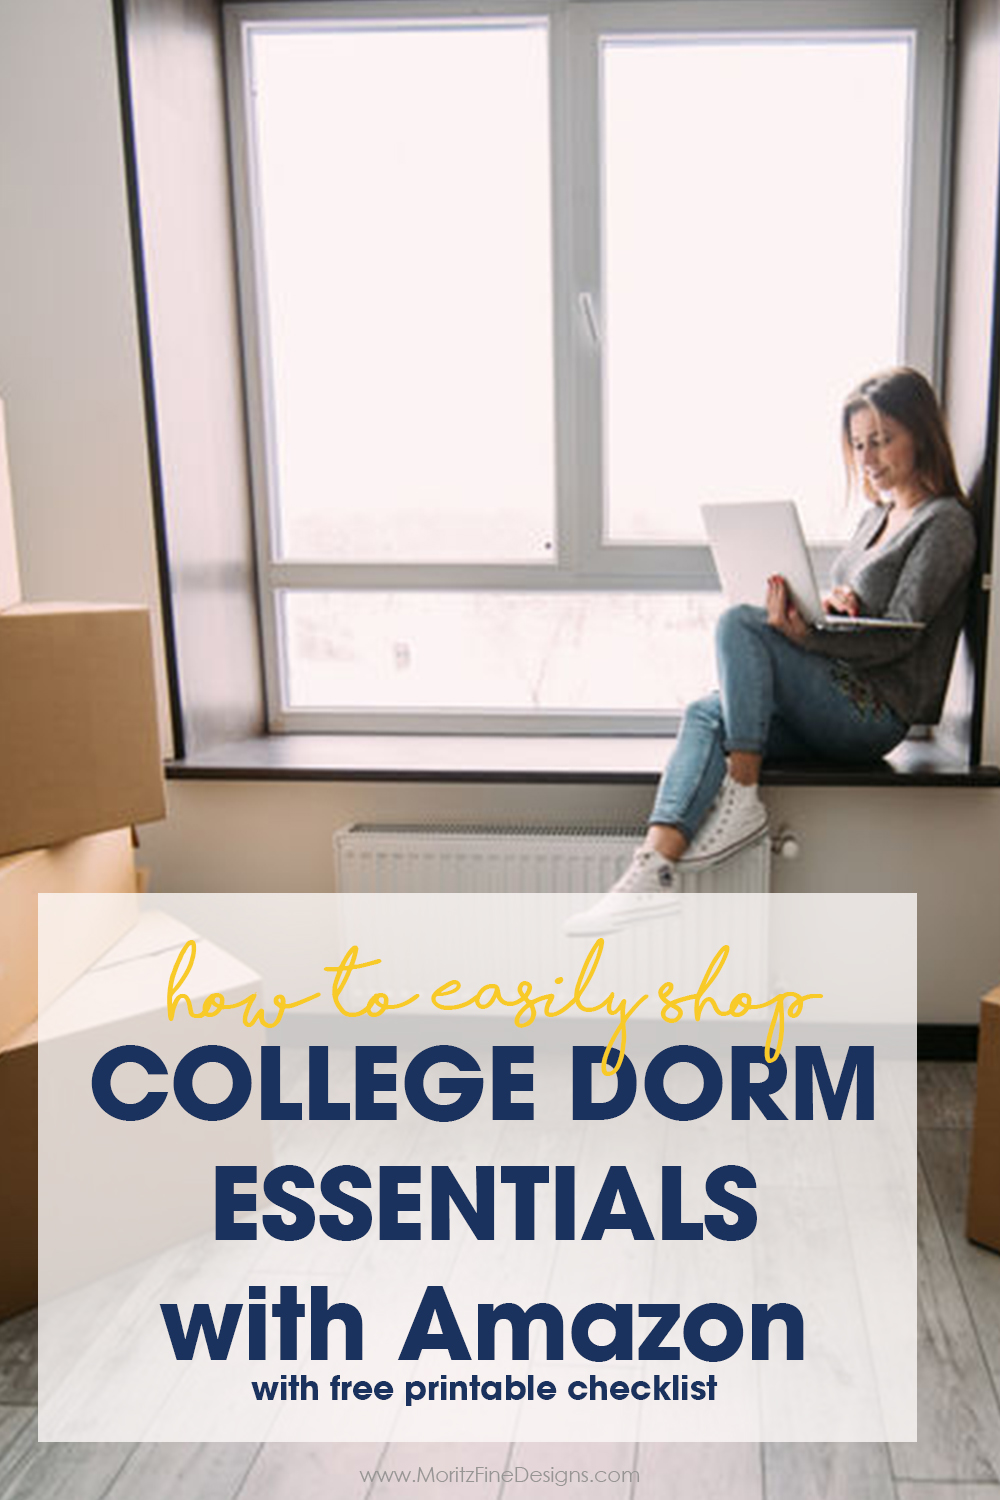 How to Easily Shop College Dorm Essentials with Amazon